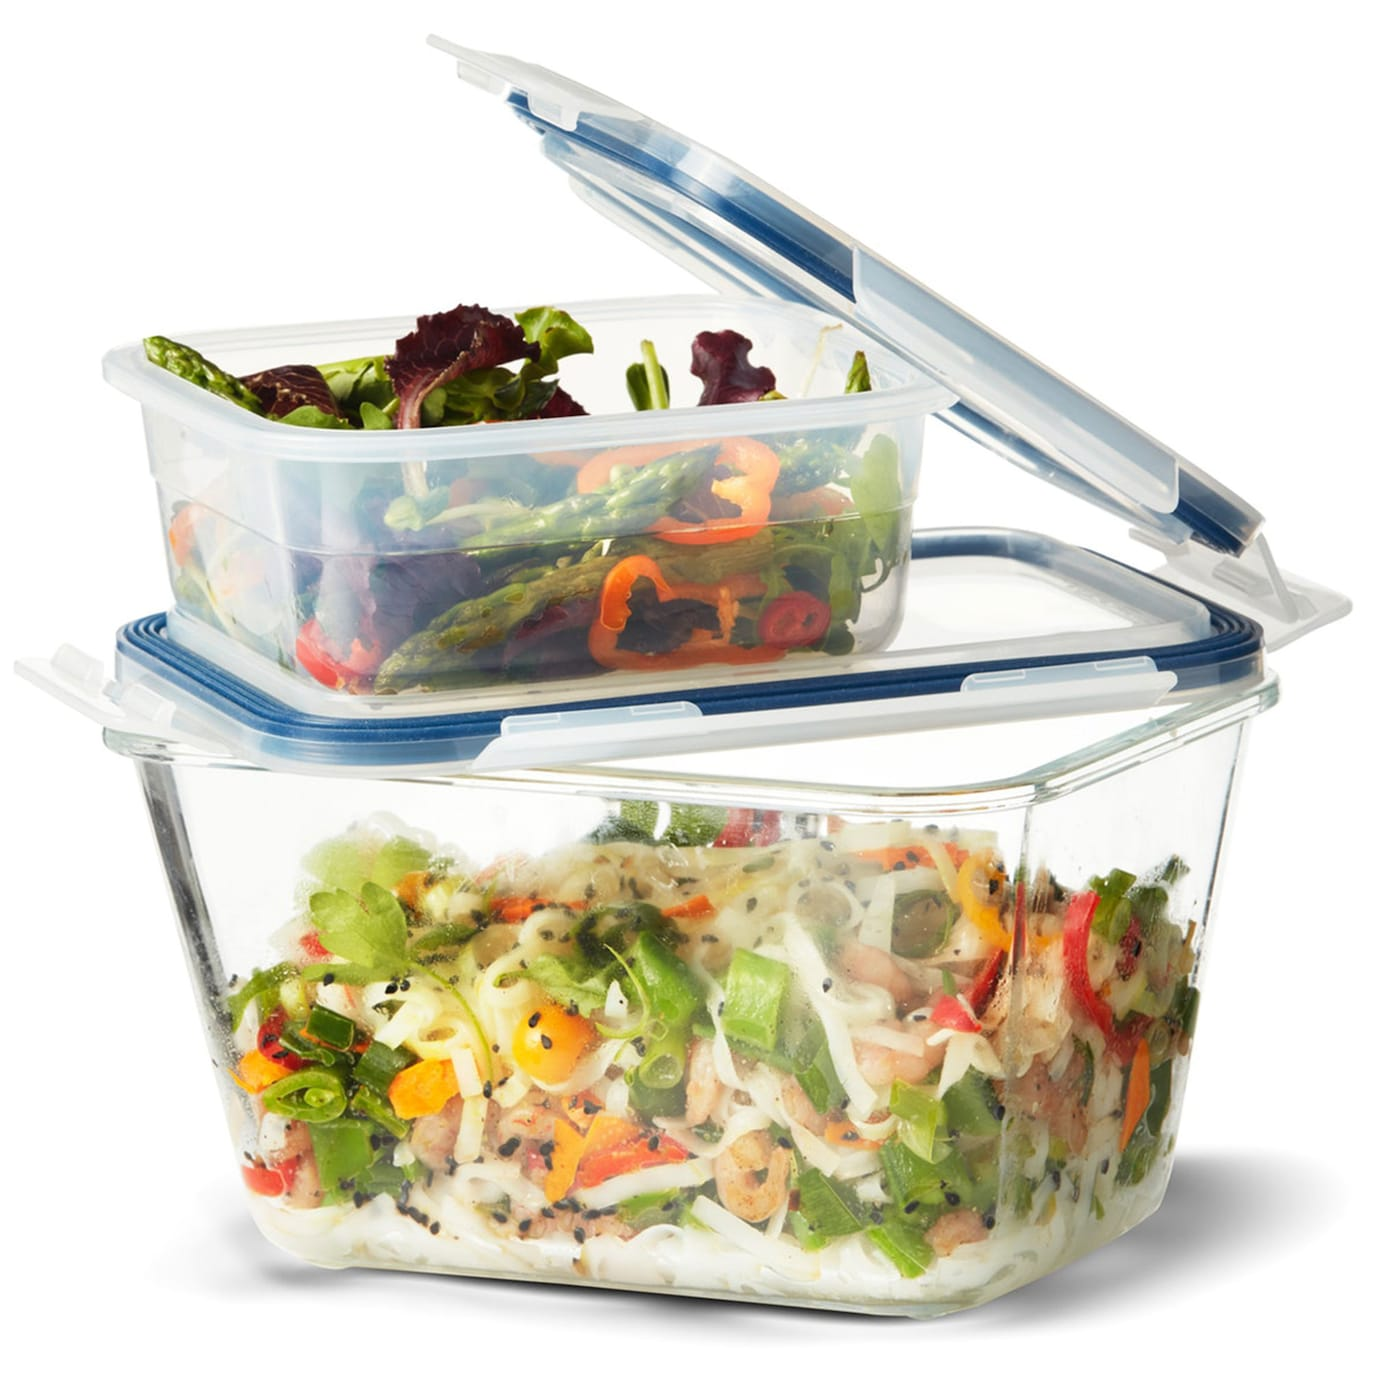 IKEA 365+ plastic food container